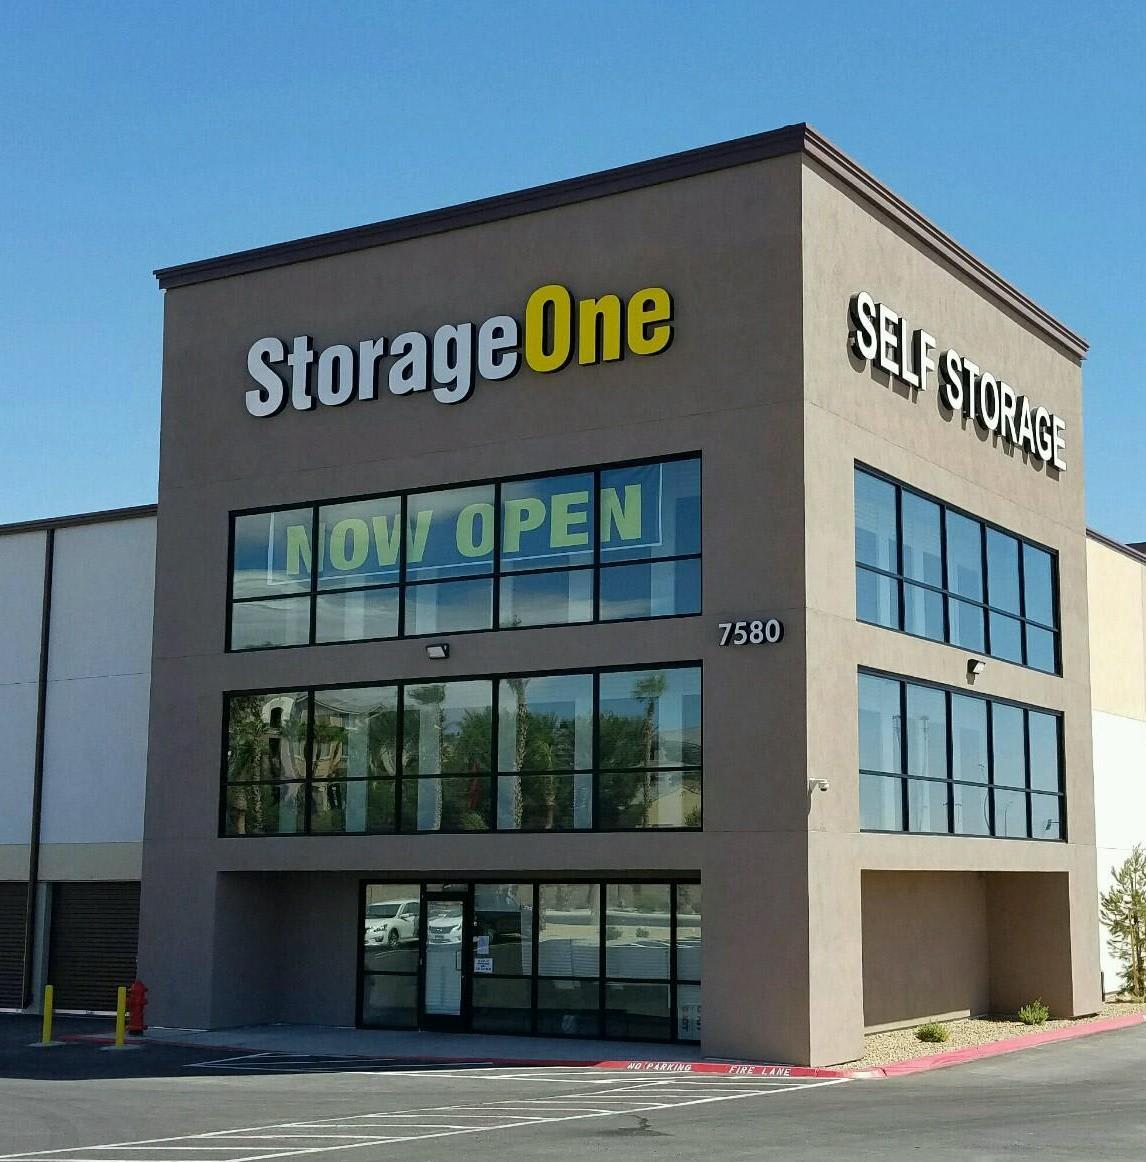 Contact us today to learn more about self storage in